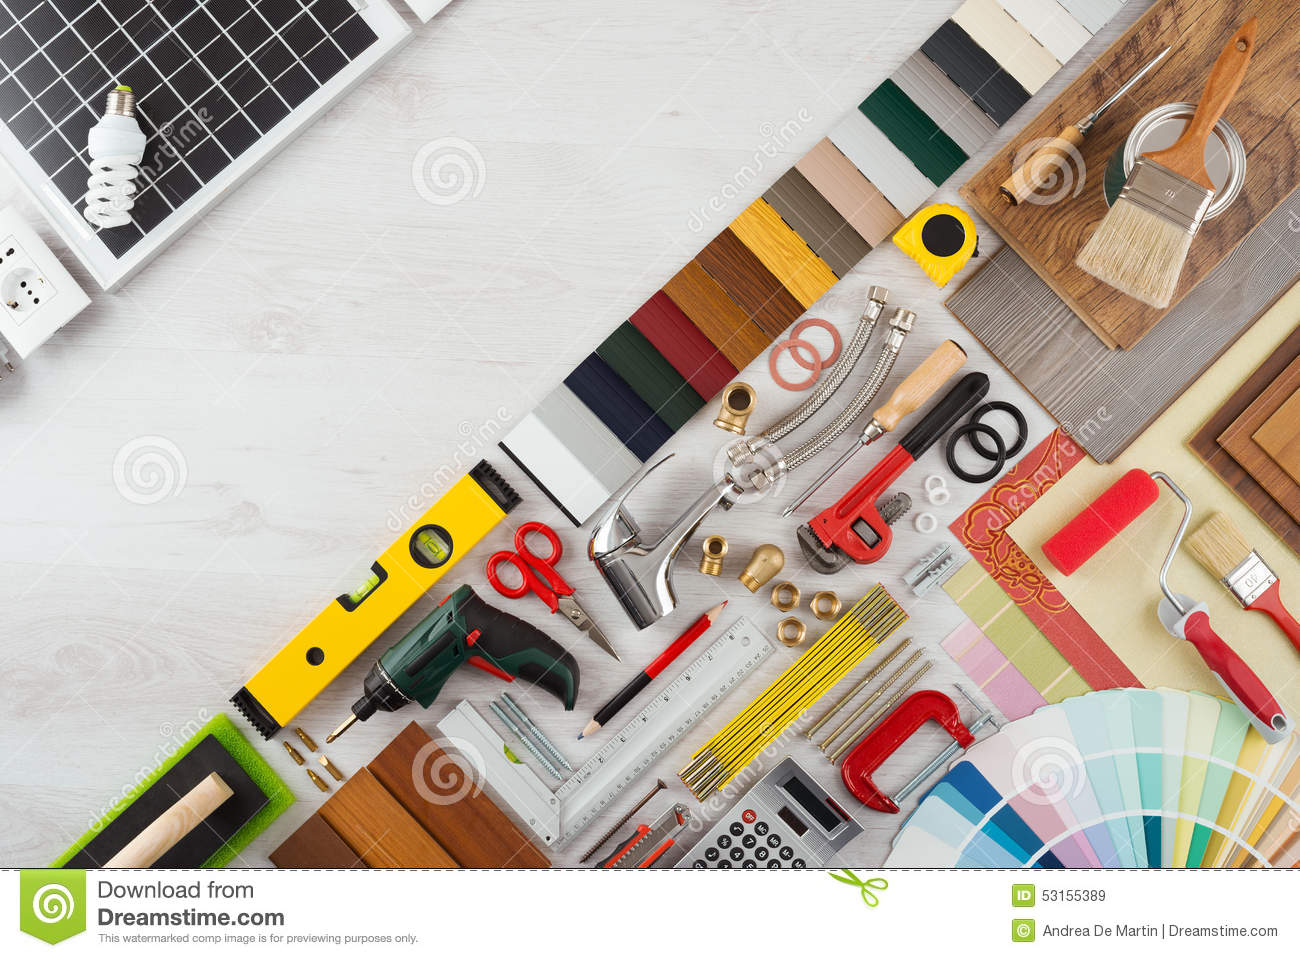 Home renovation and diy stock image image of copy for Do it yourself home renovation